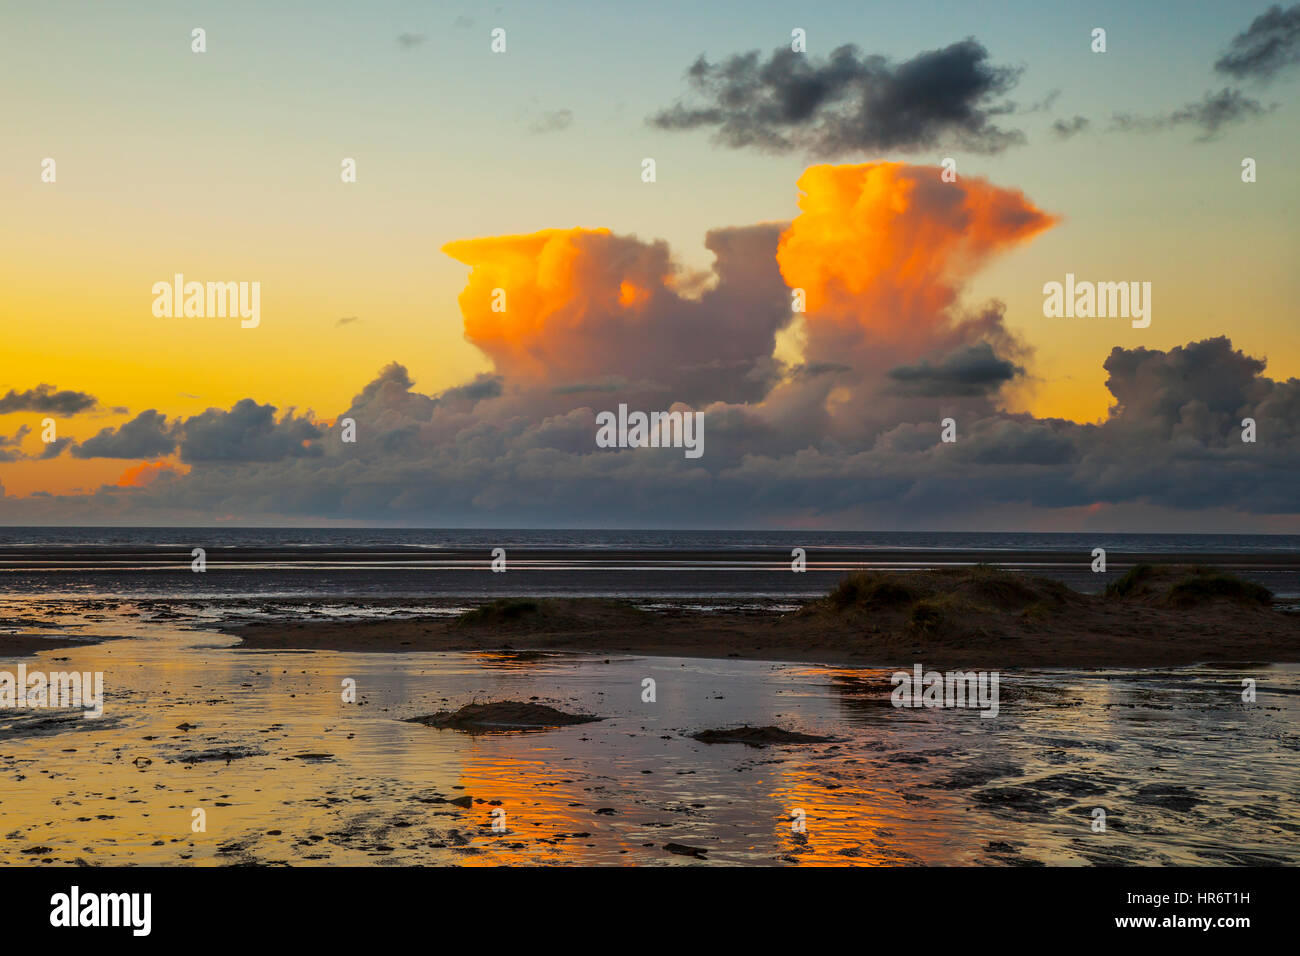 Southport, Merseyside, UK. 27th Feb, 2017. Weather. Sunset over Ainsdale Beach as orange towering Cumulus congestus - Stock Image